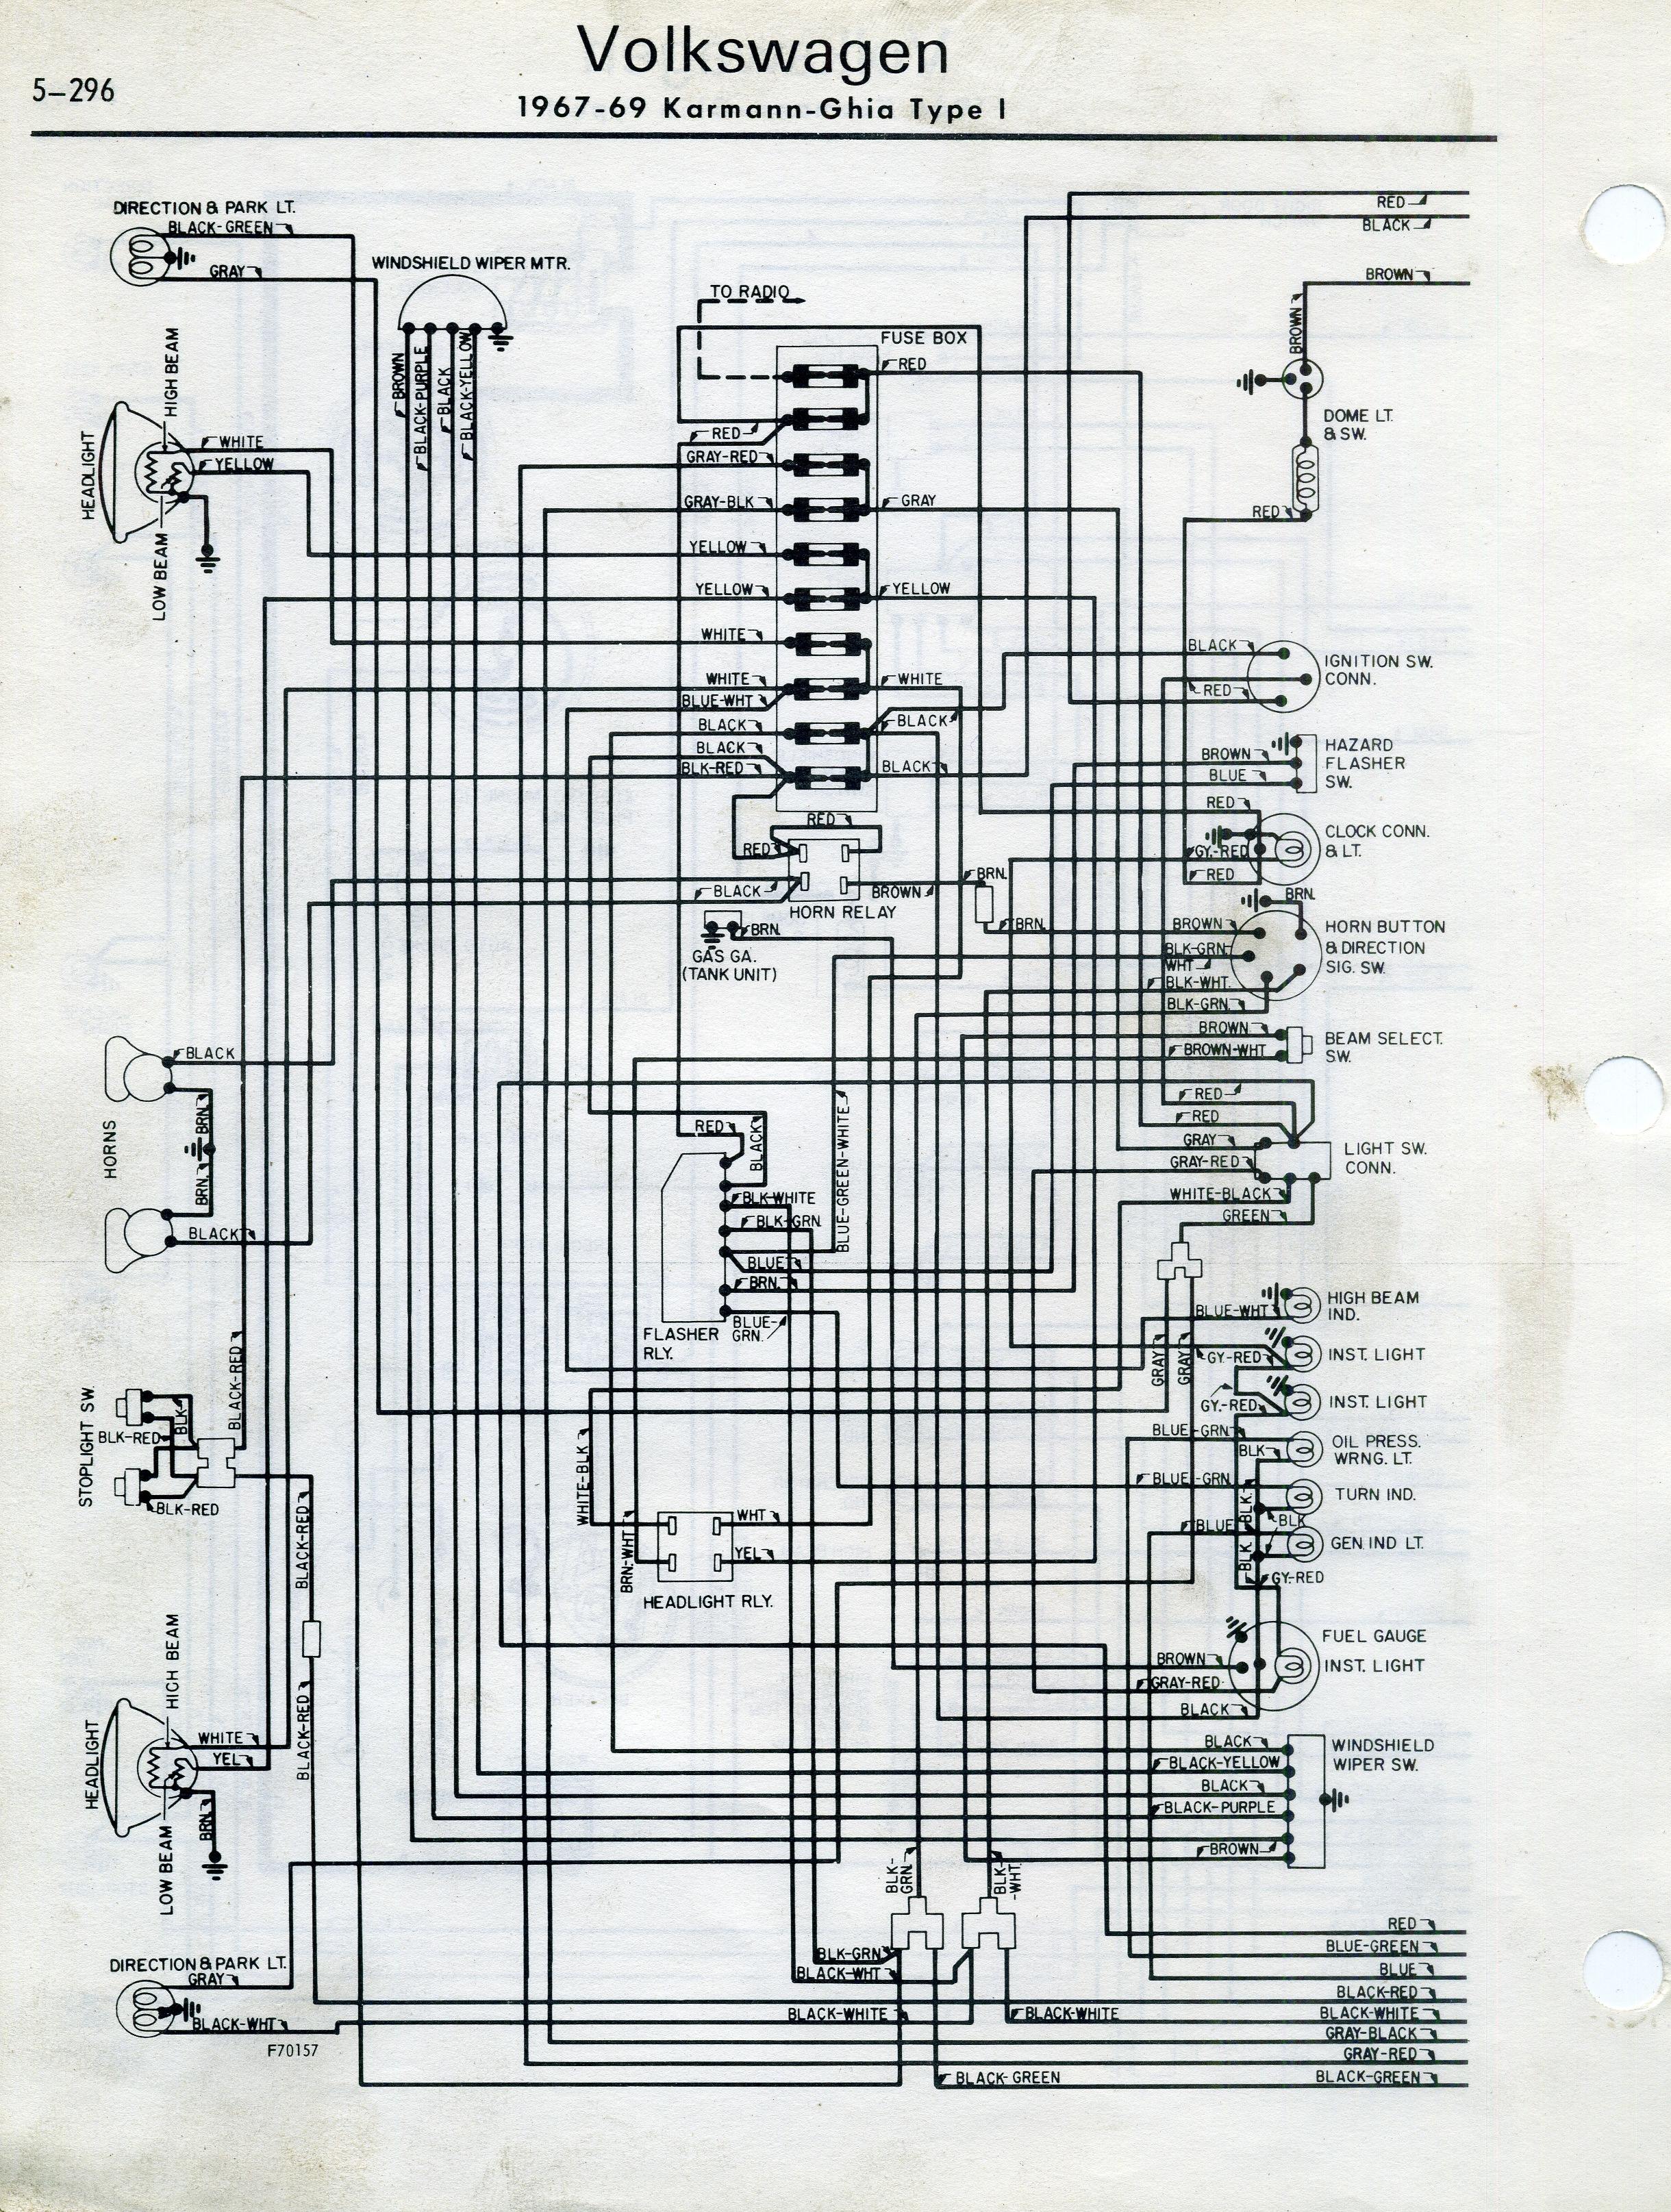 1970 vw karmann ghia wiring diagram ghia wiring diagram thesamba.com :: karmann ghia wiring diagrams